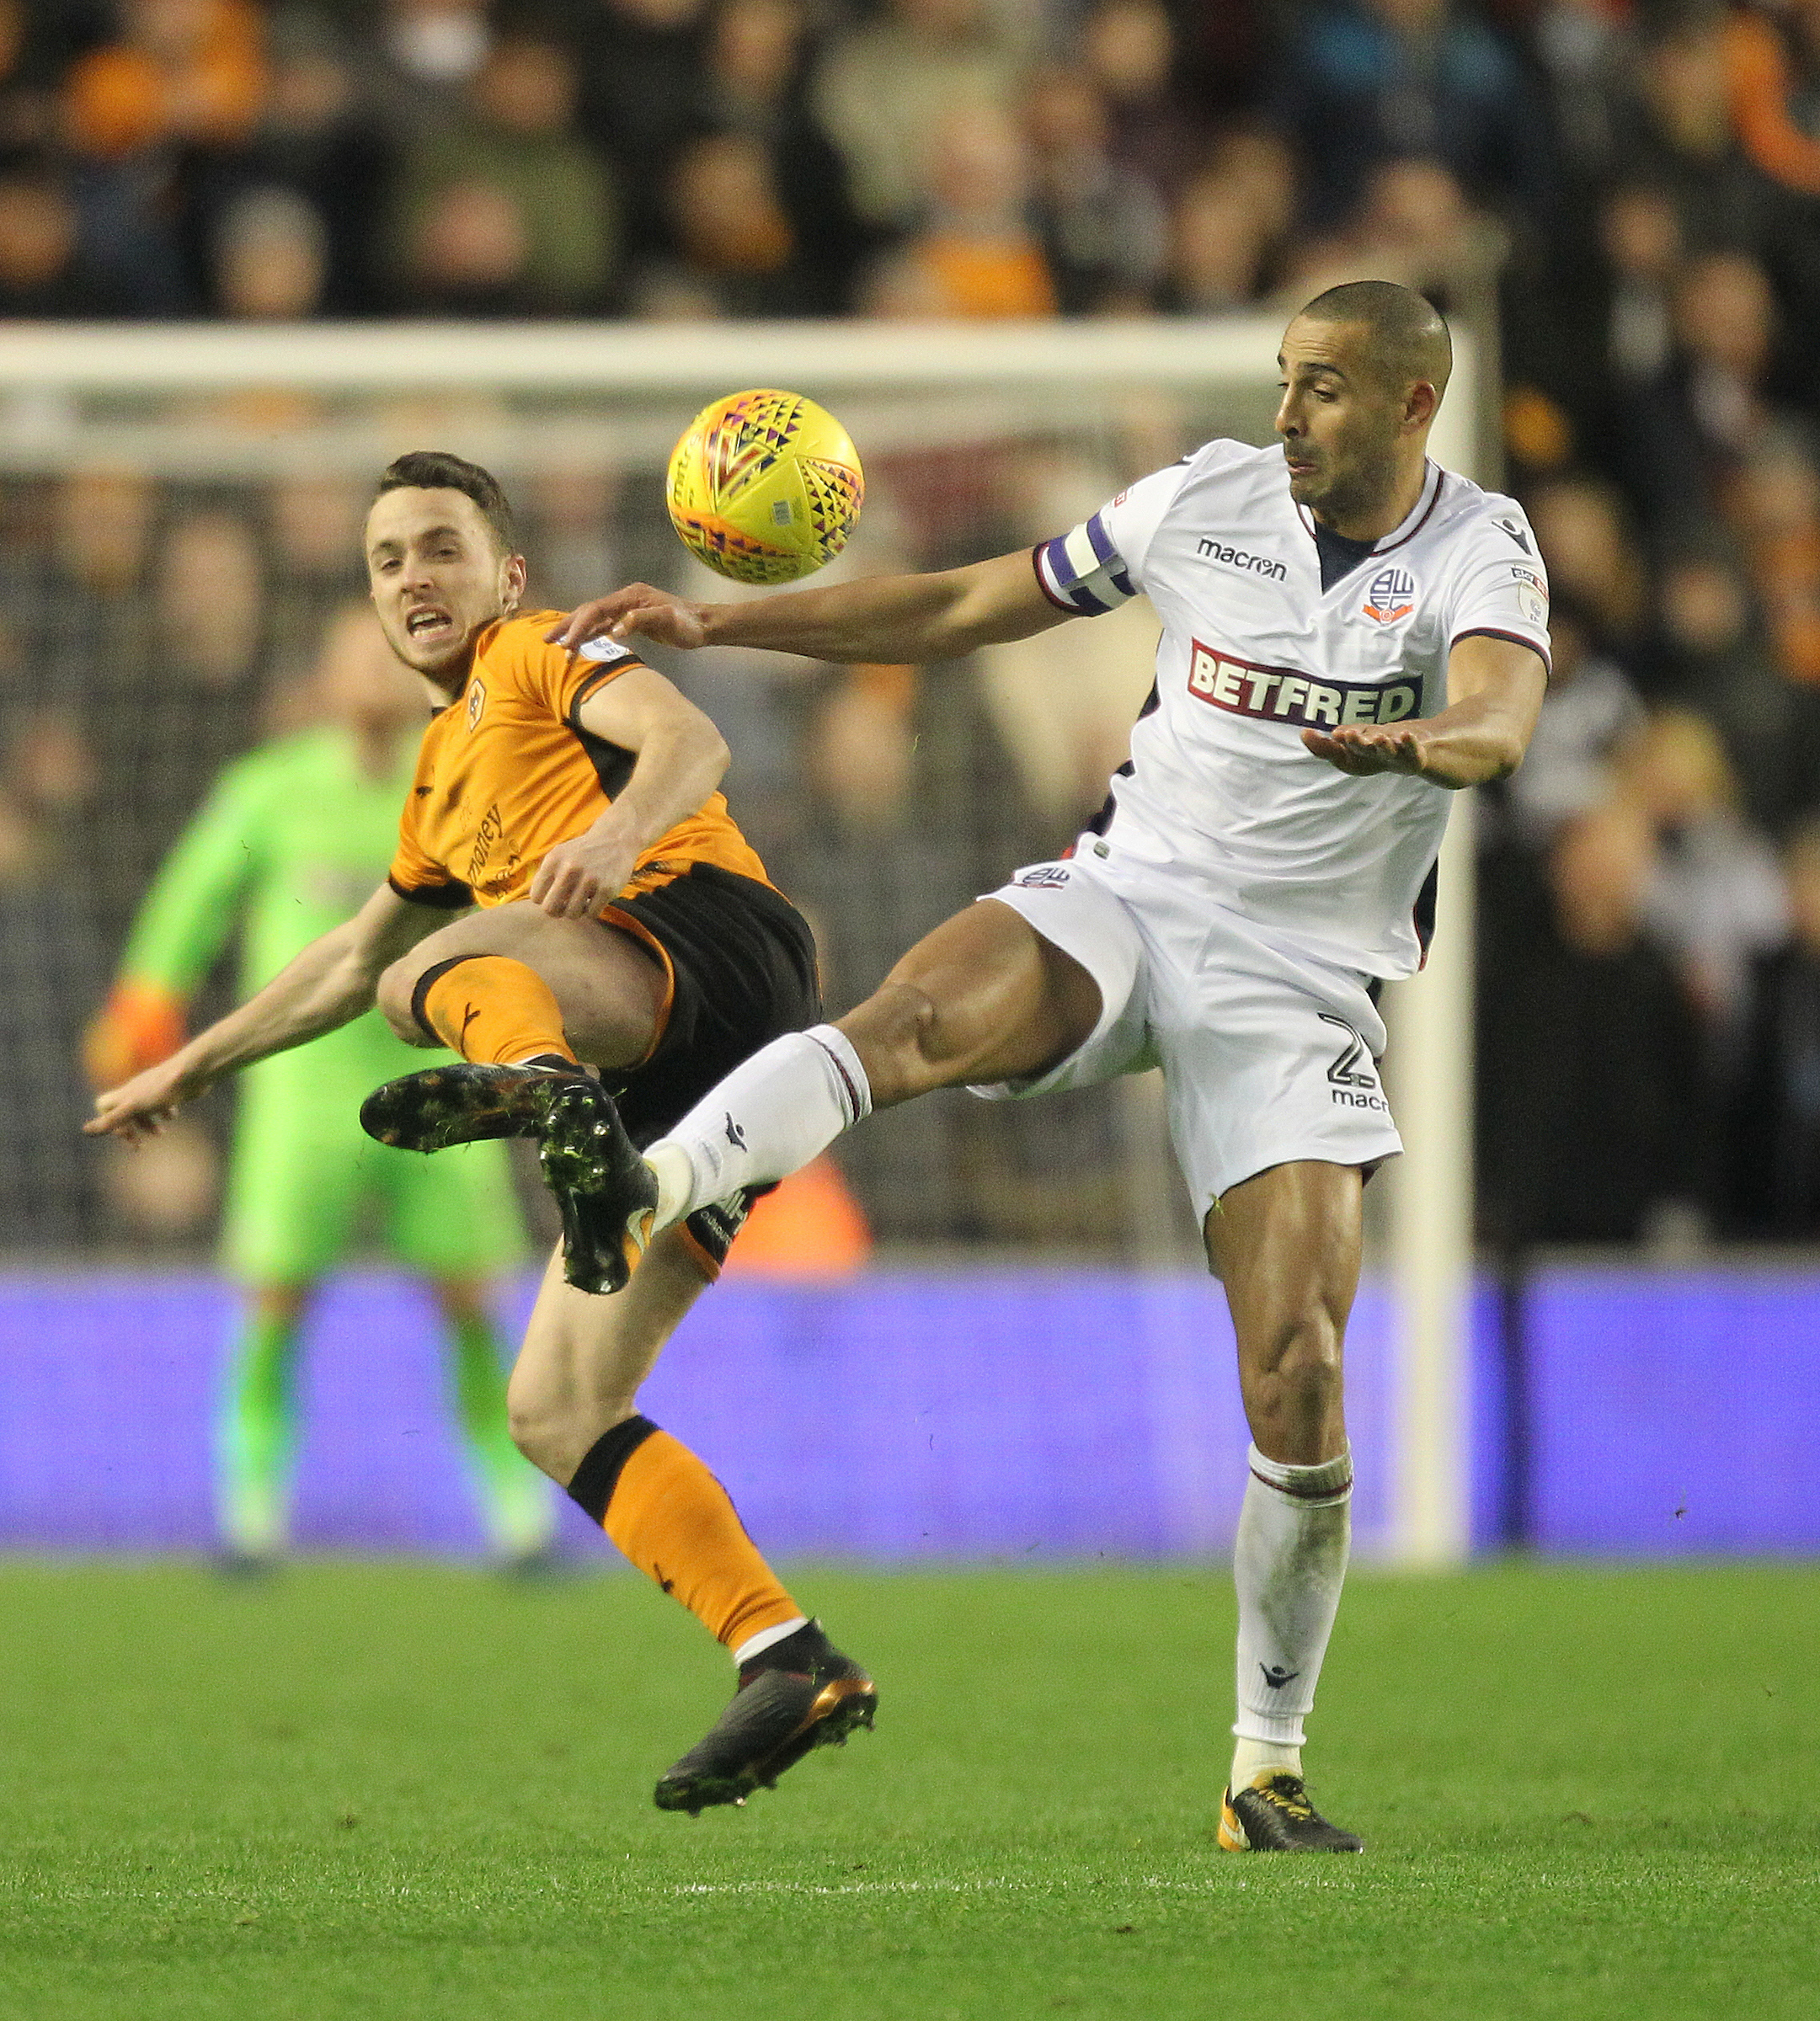 Darren Pratley battles for the ball in the 5-1 defeat against Wolves